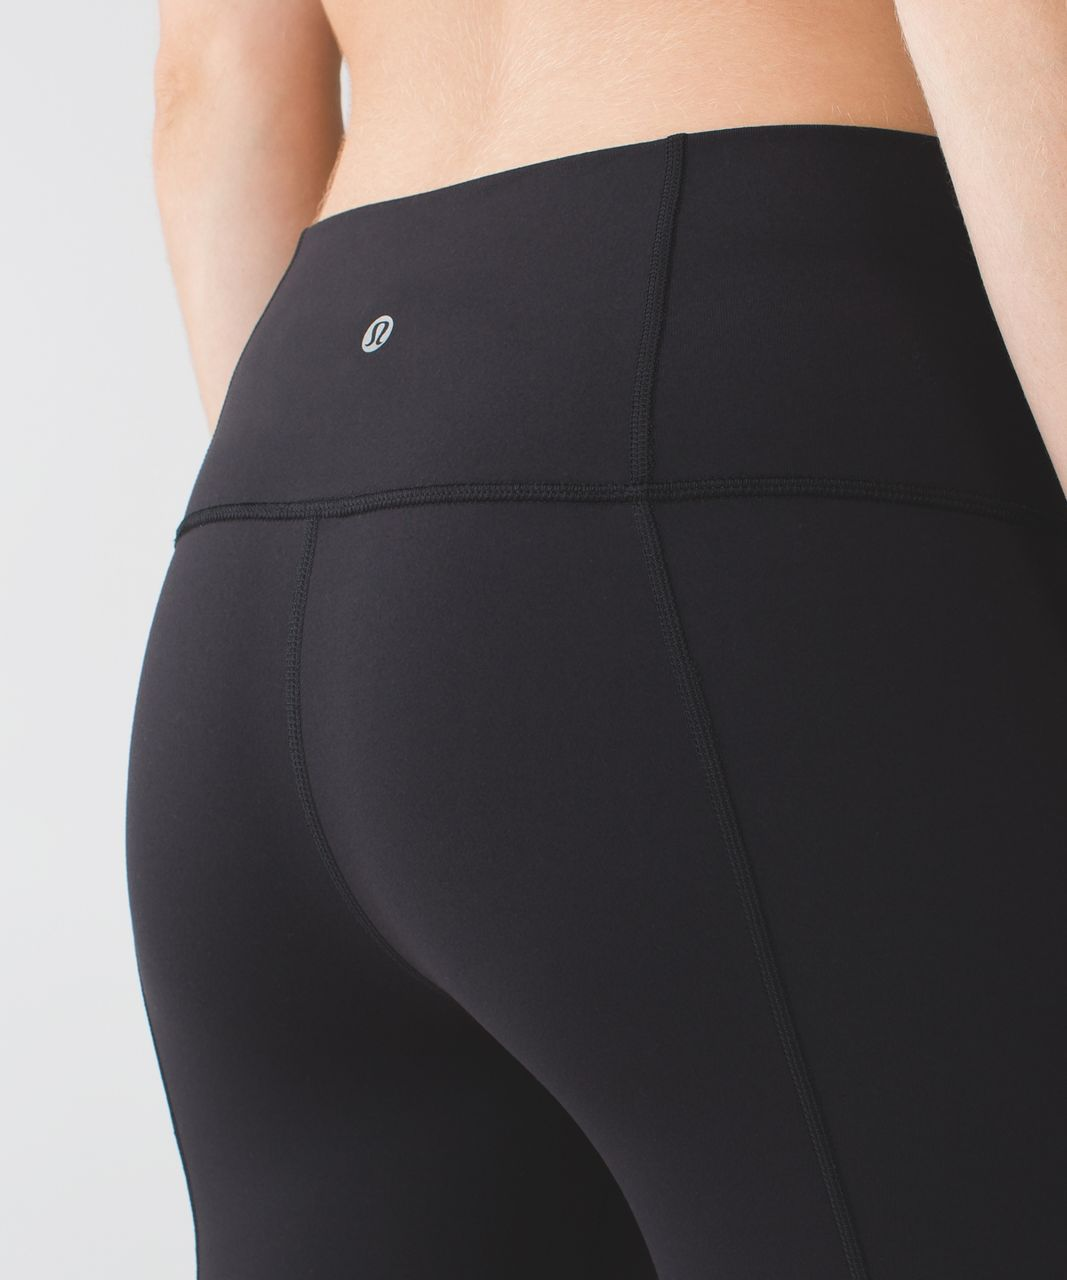 Lululemon Groove Short II (Roll Down - Tall) *Full-On Luon - Black